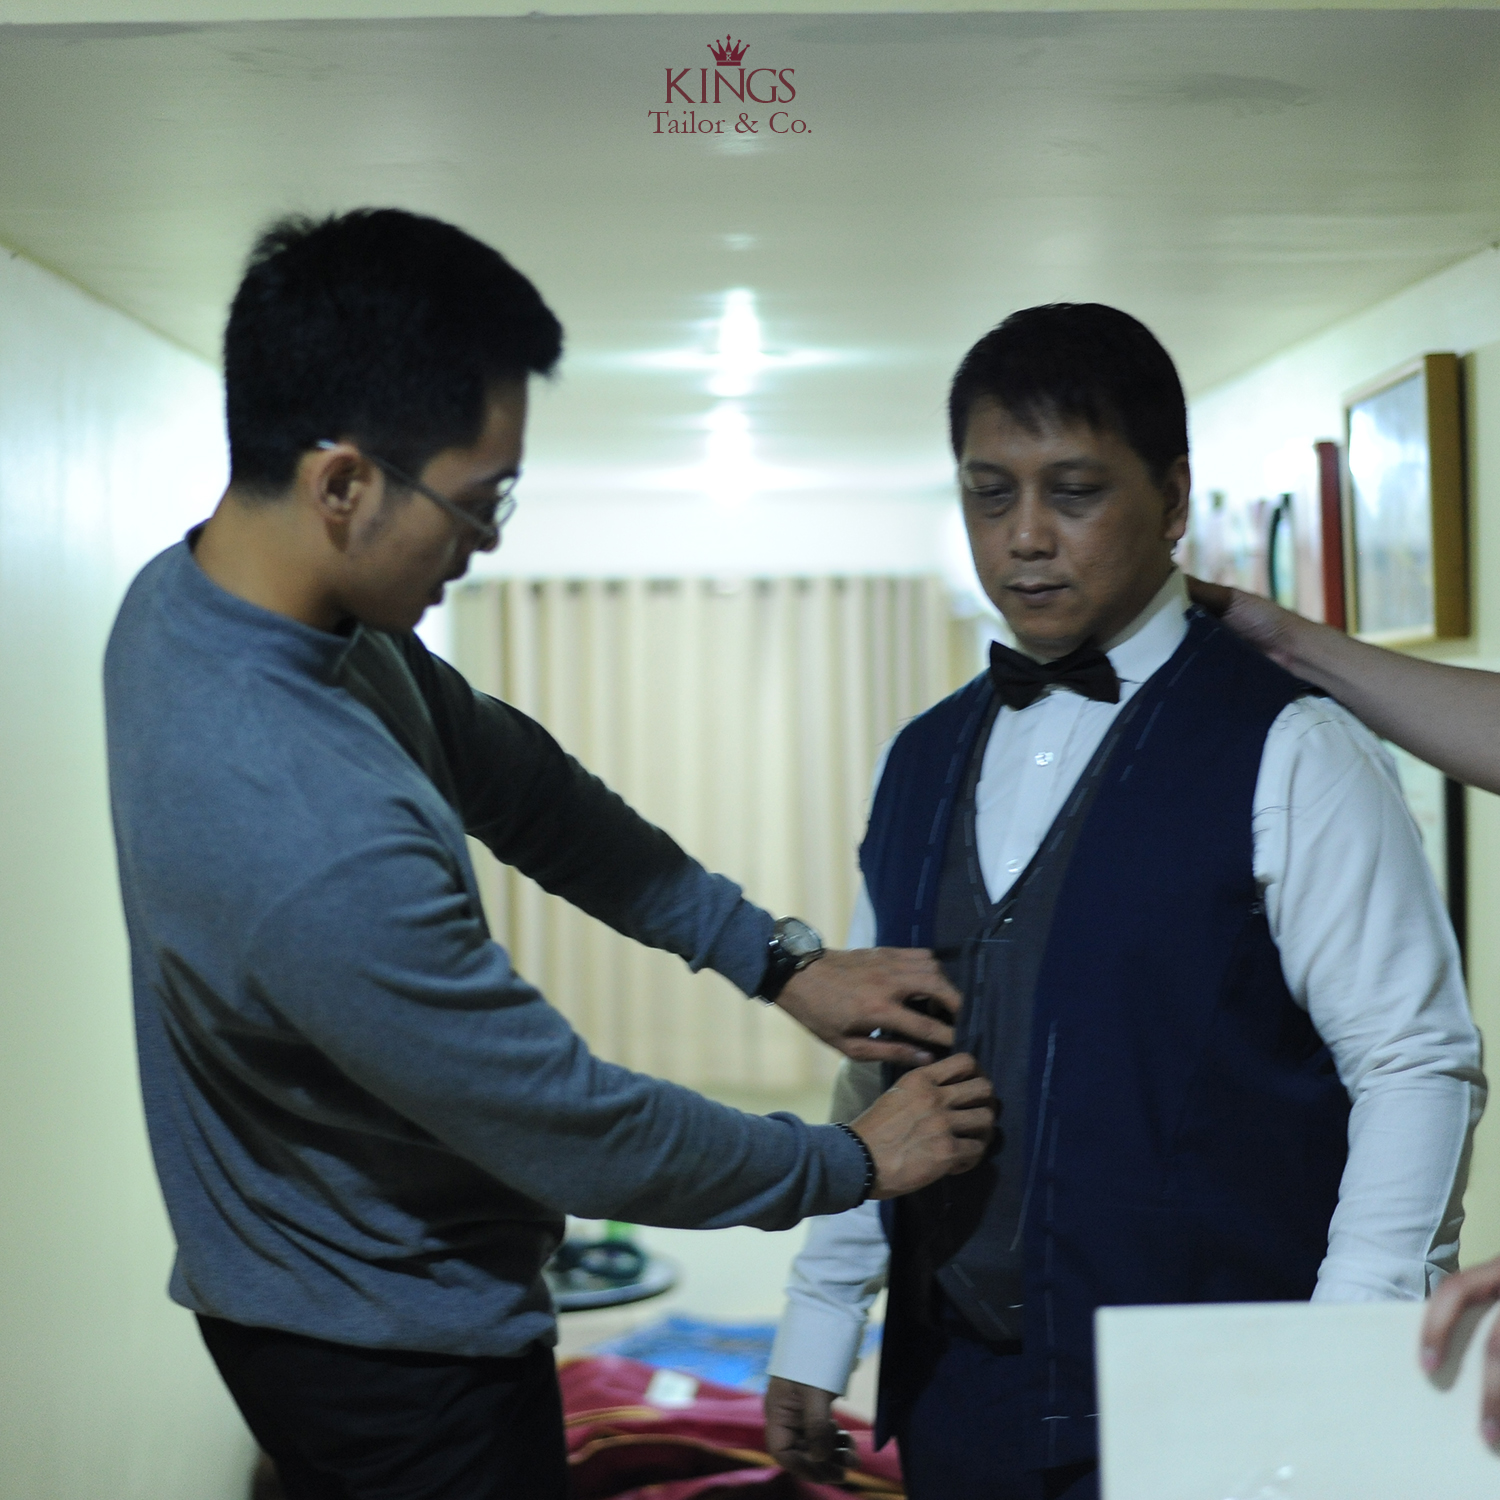 Kahitna Fitting For 30th Years Anniversary By Kings Tailor Houseofcuff Square Pink Light Tie Co